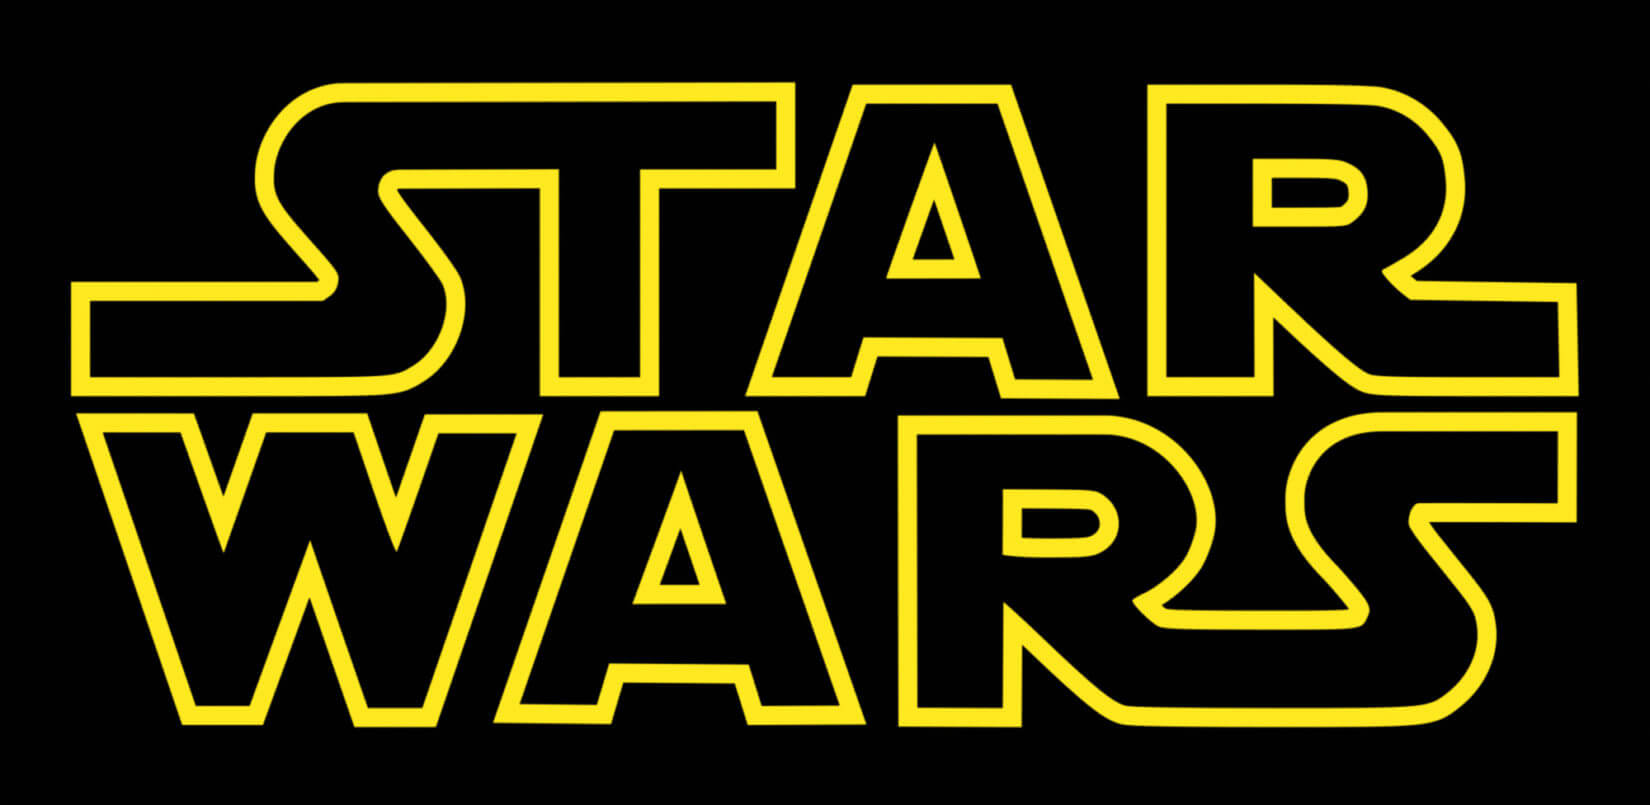 STAR WARS LOGO YELLOW ON BLACK-FILTER